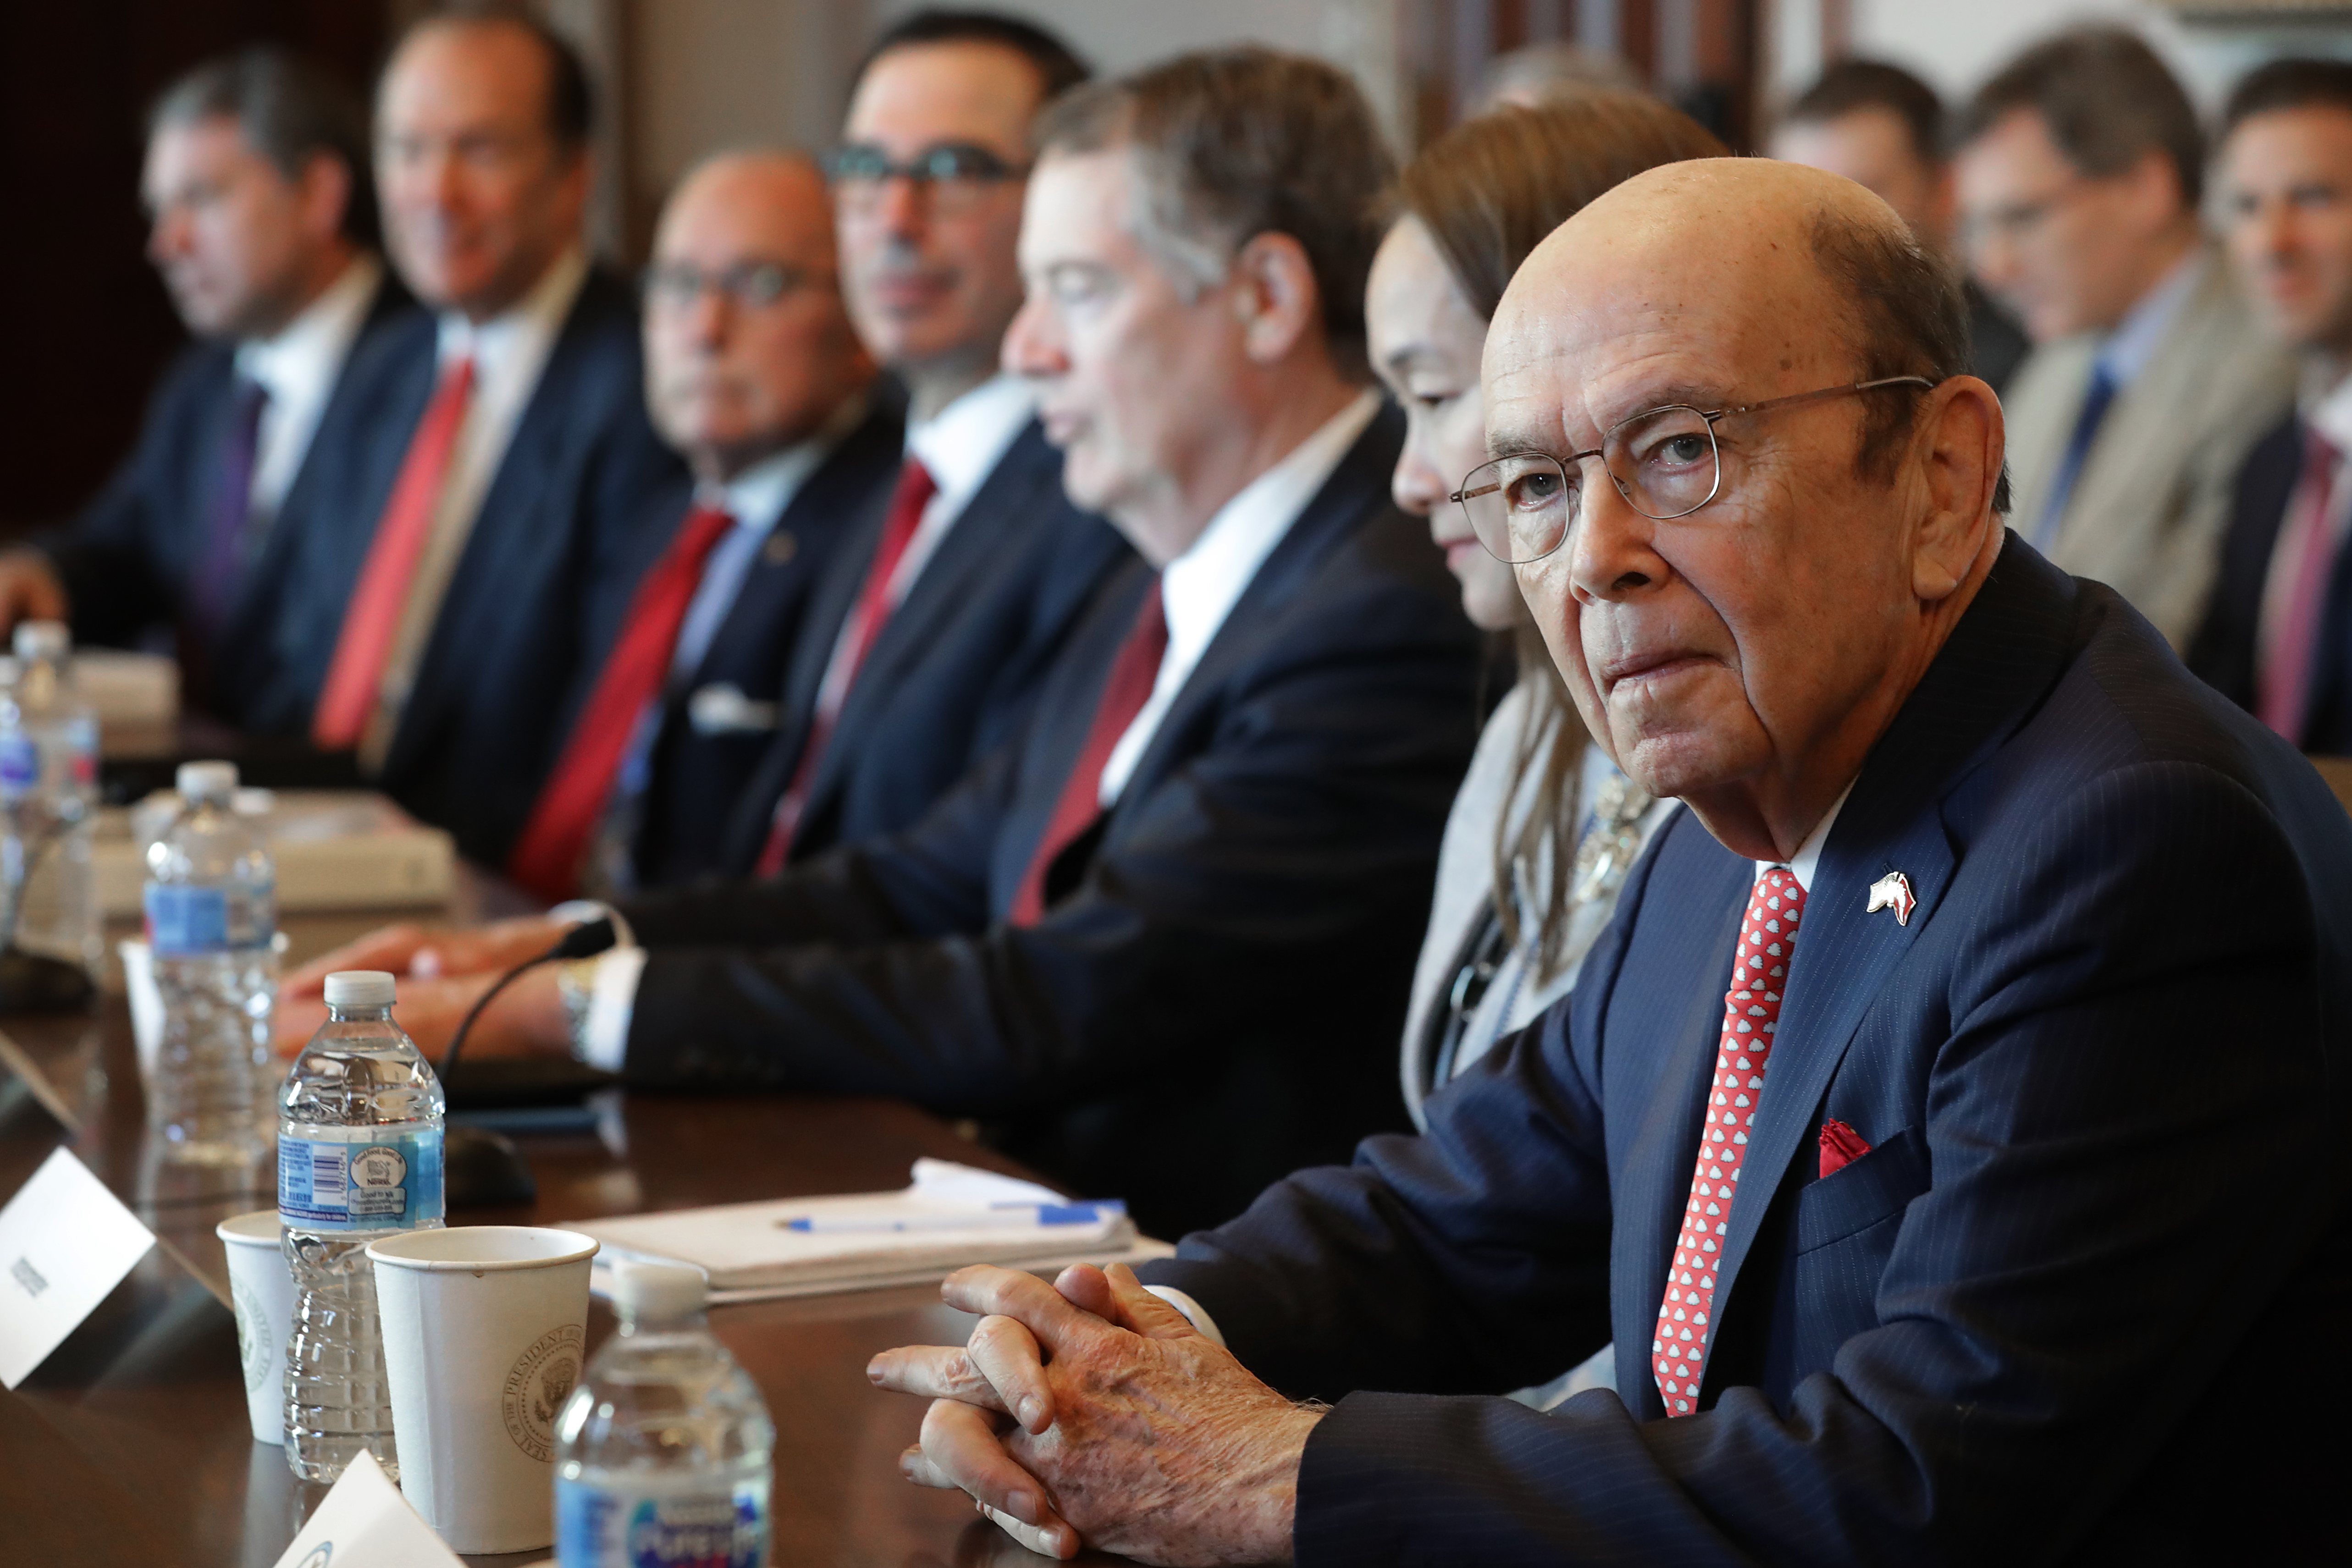 WASHINGTON, DC - JANUARY 30: Commerce Secretary Wilbur Ross (R) and other Trump Administration officials sit down with Chinese vice ministers and senior officials for trade negotiations in the Diplomatic Room at the Eisenhower Executive Office Building January 30, 2019 in Washington, DC. (Chip Somodevilla/Getty Images)